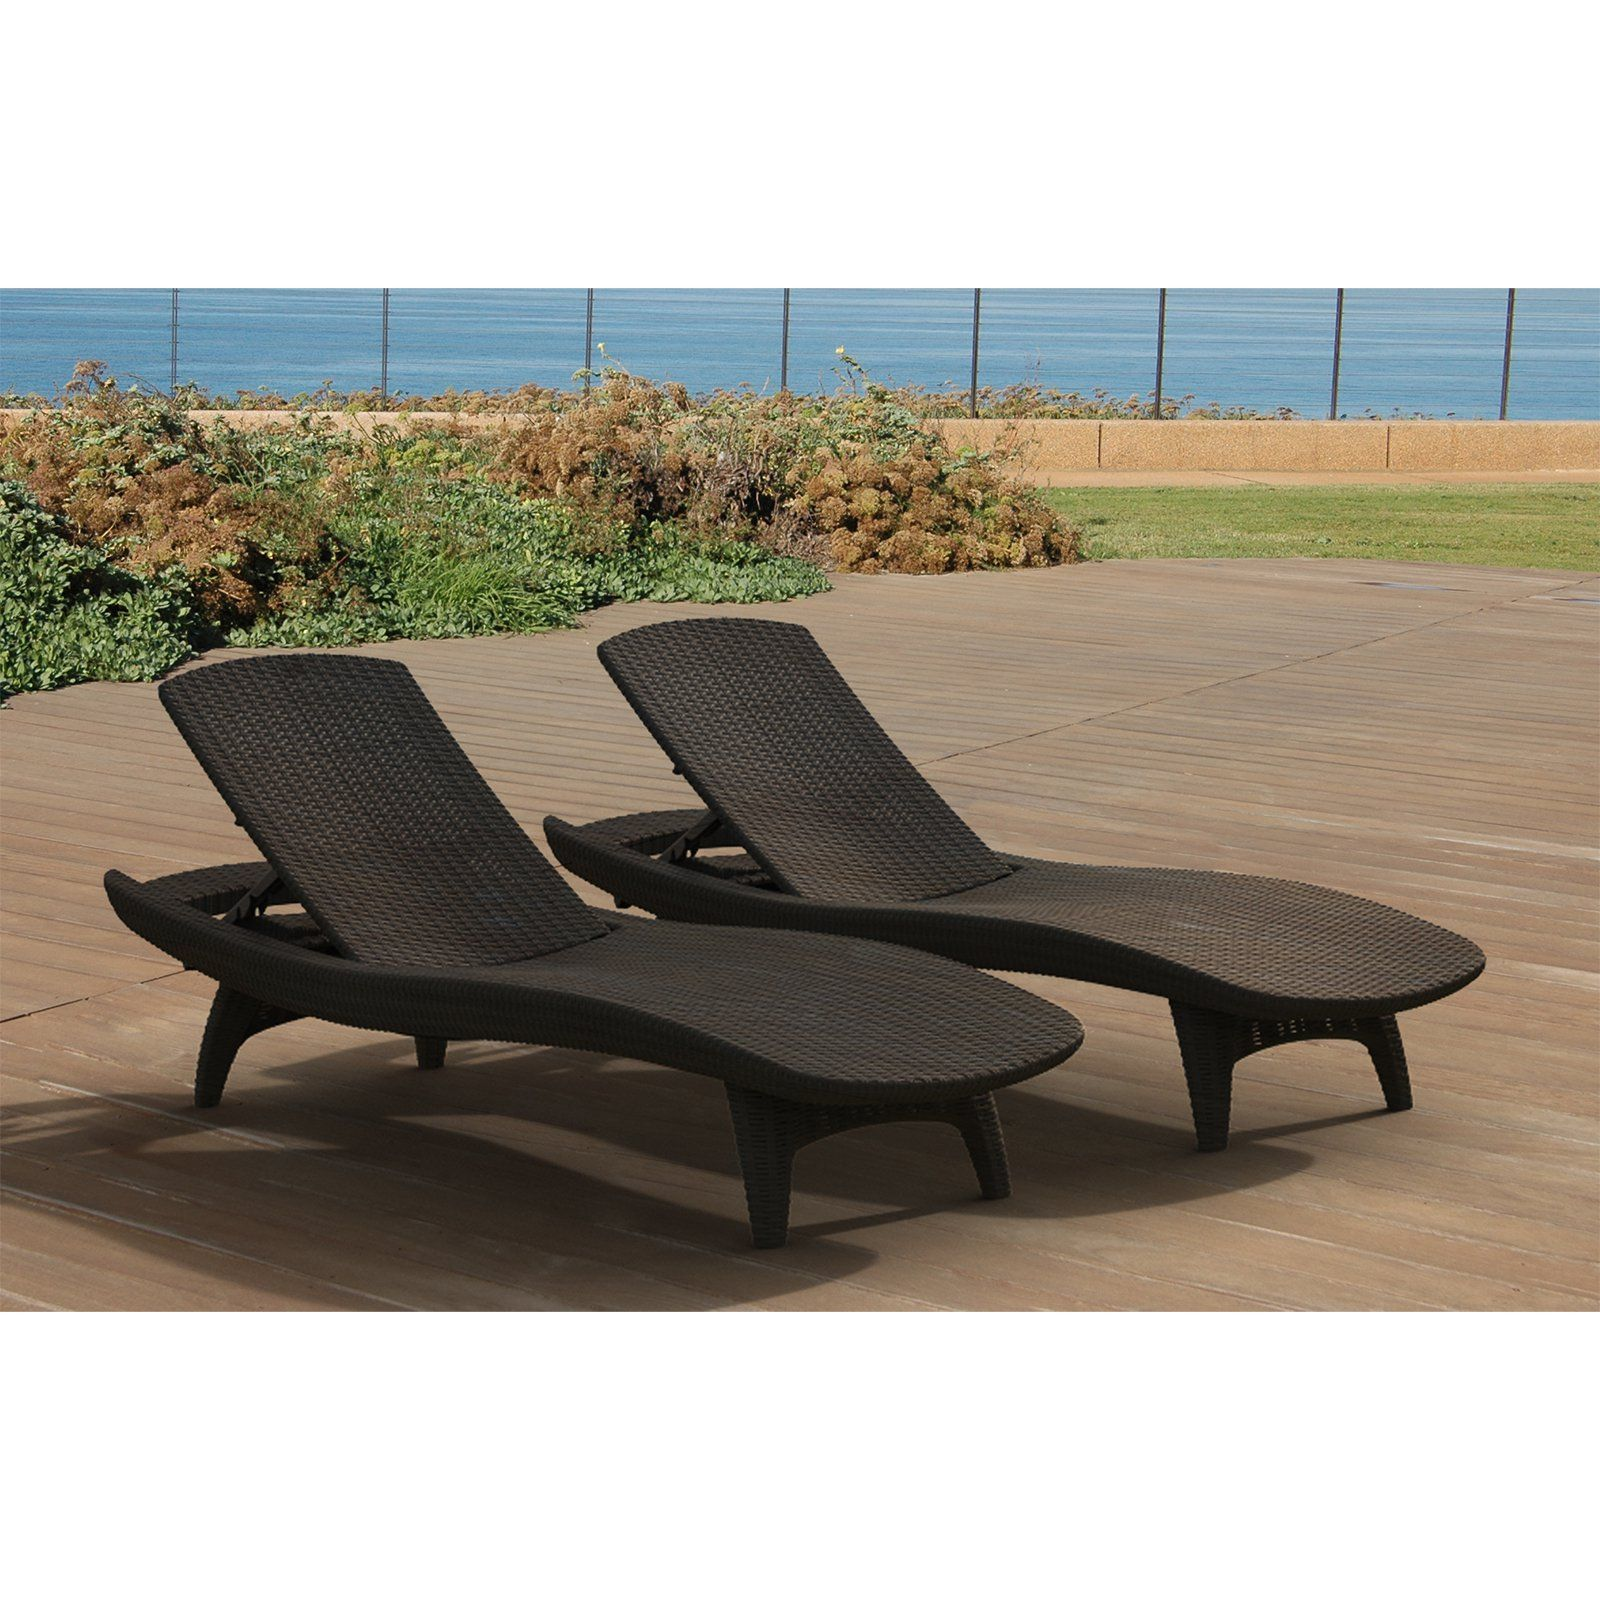 Keter outdoor chaise lounge set of 2 605 84 hayneedle